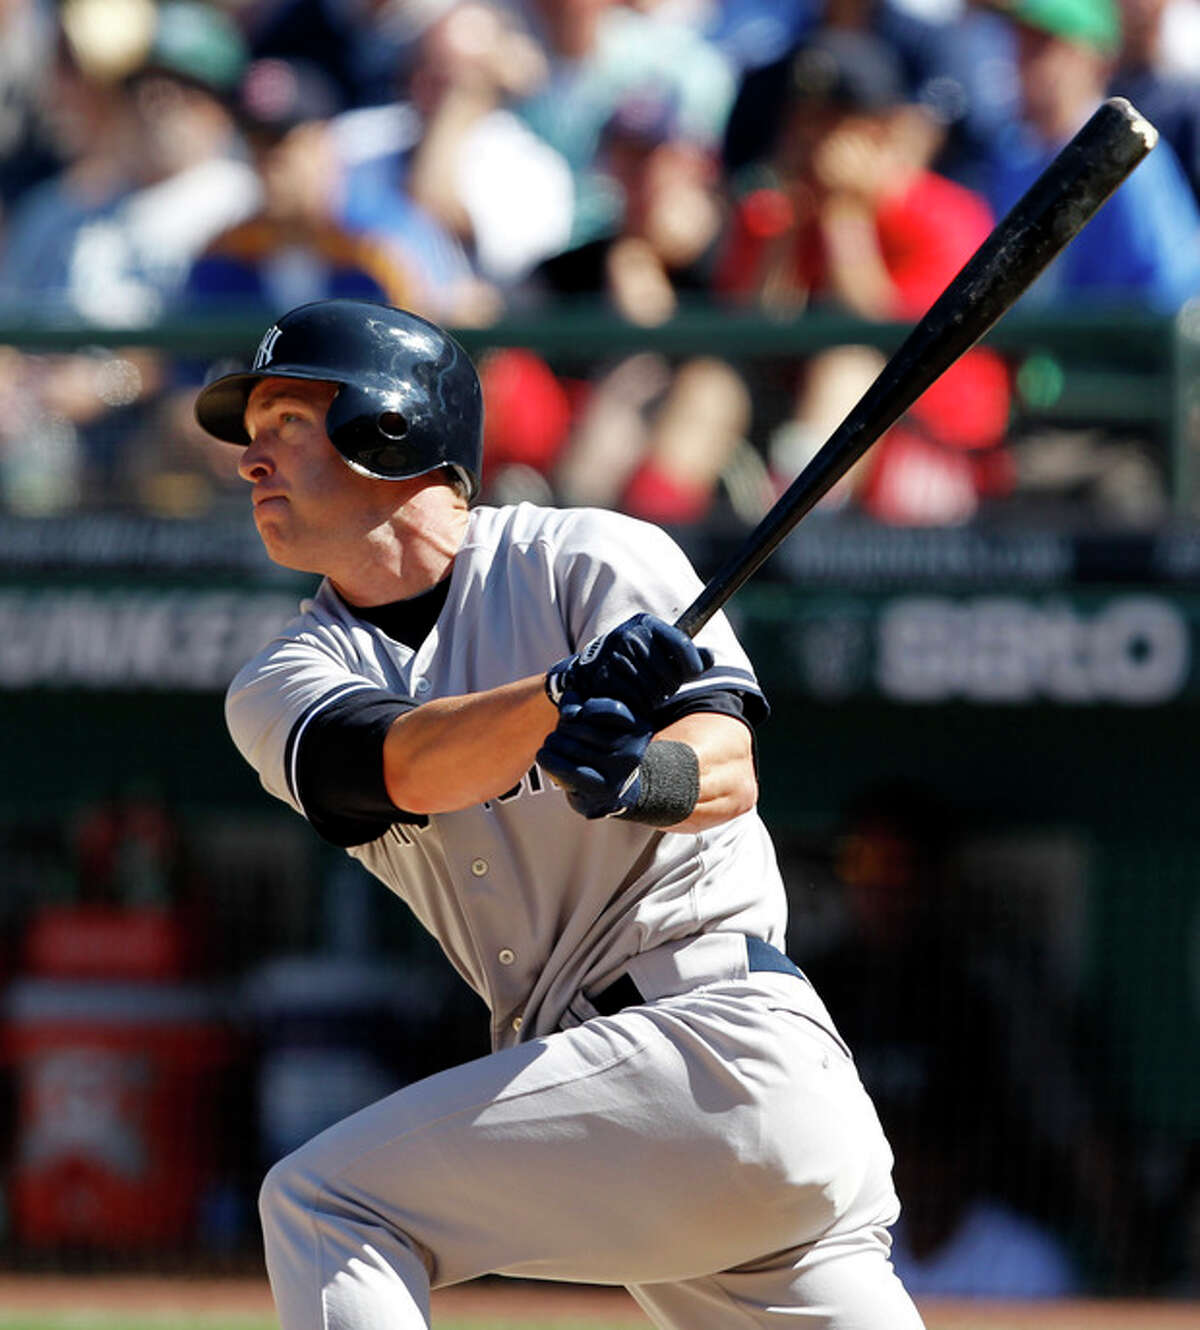 New York Yankees pinch hitter Jayson Nix watches the path of his three-run double against the Seattle Mariners in the eighth inning of a baseball game on Wednesday, July 25, 2012, in Seattle. (AP Photo/Elaine Thompson)